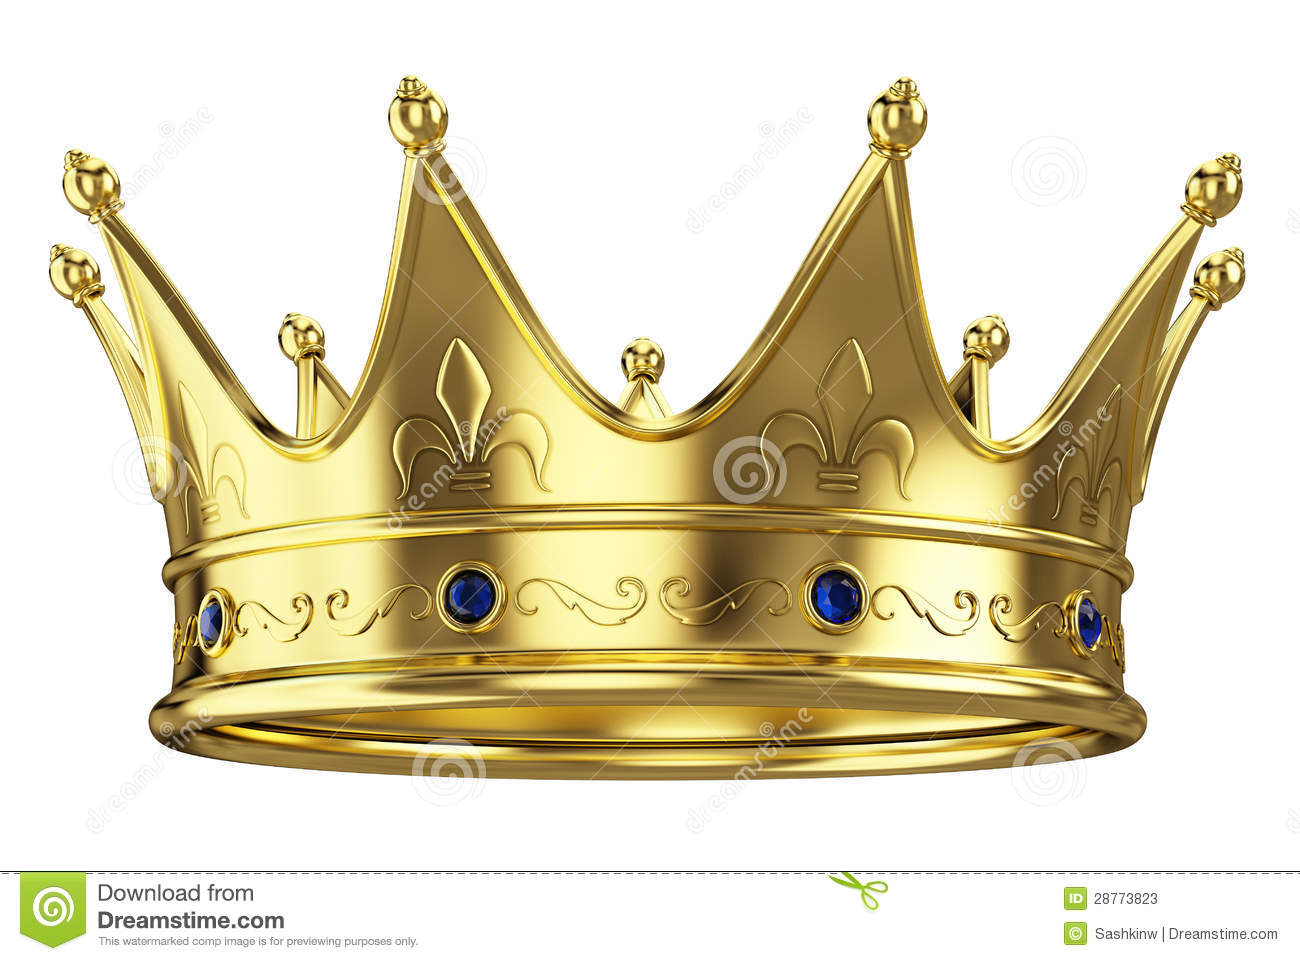 Gold king crown clip art banner royalty free library Gold Crown Clipart - Clipart Kid banner royalty free library